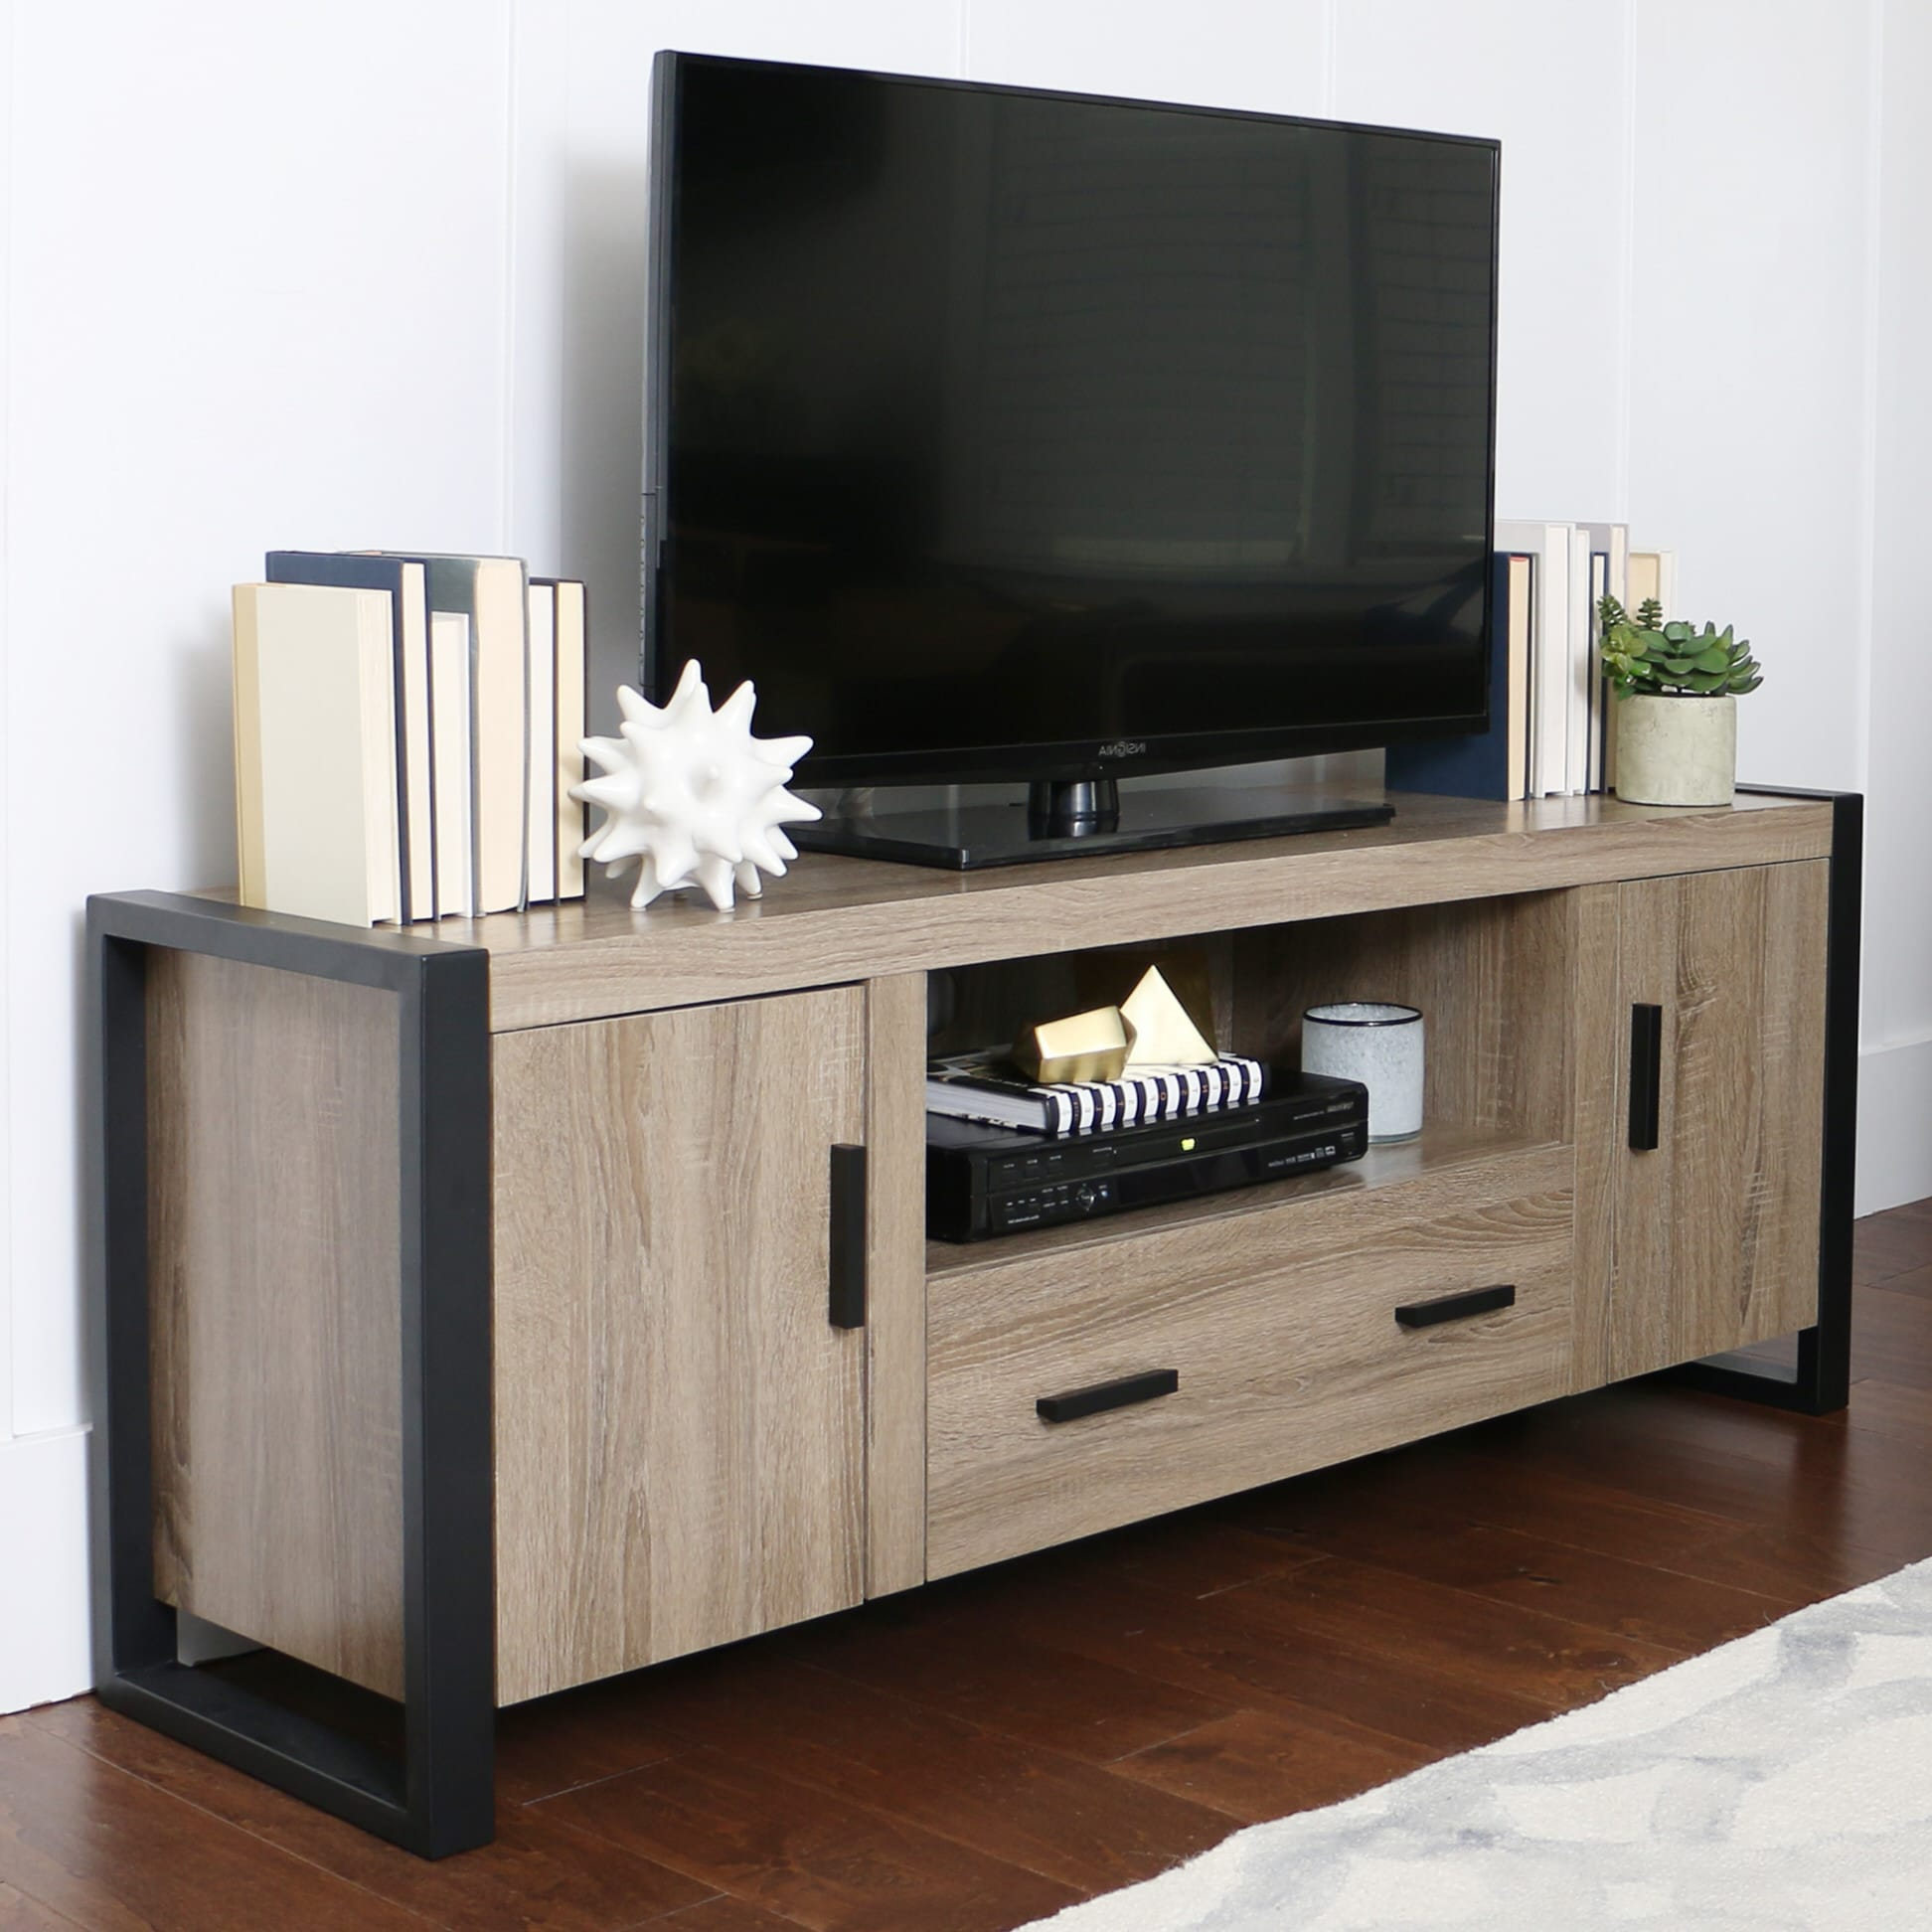 Urban Blend 60 Inch Tv Stand Ash Greyblack By Walker Edison